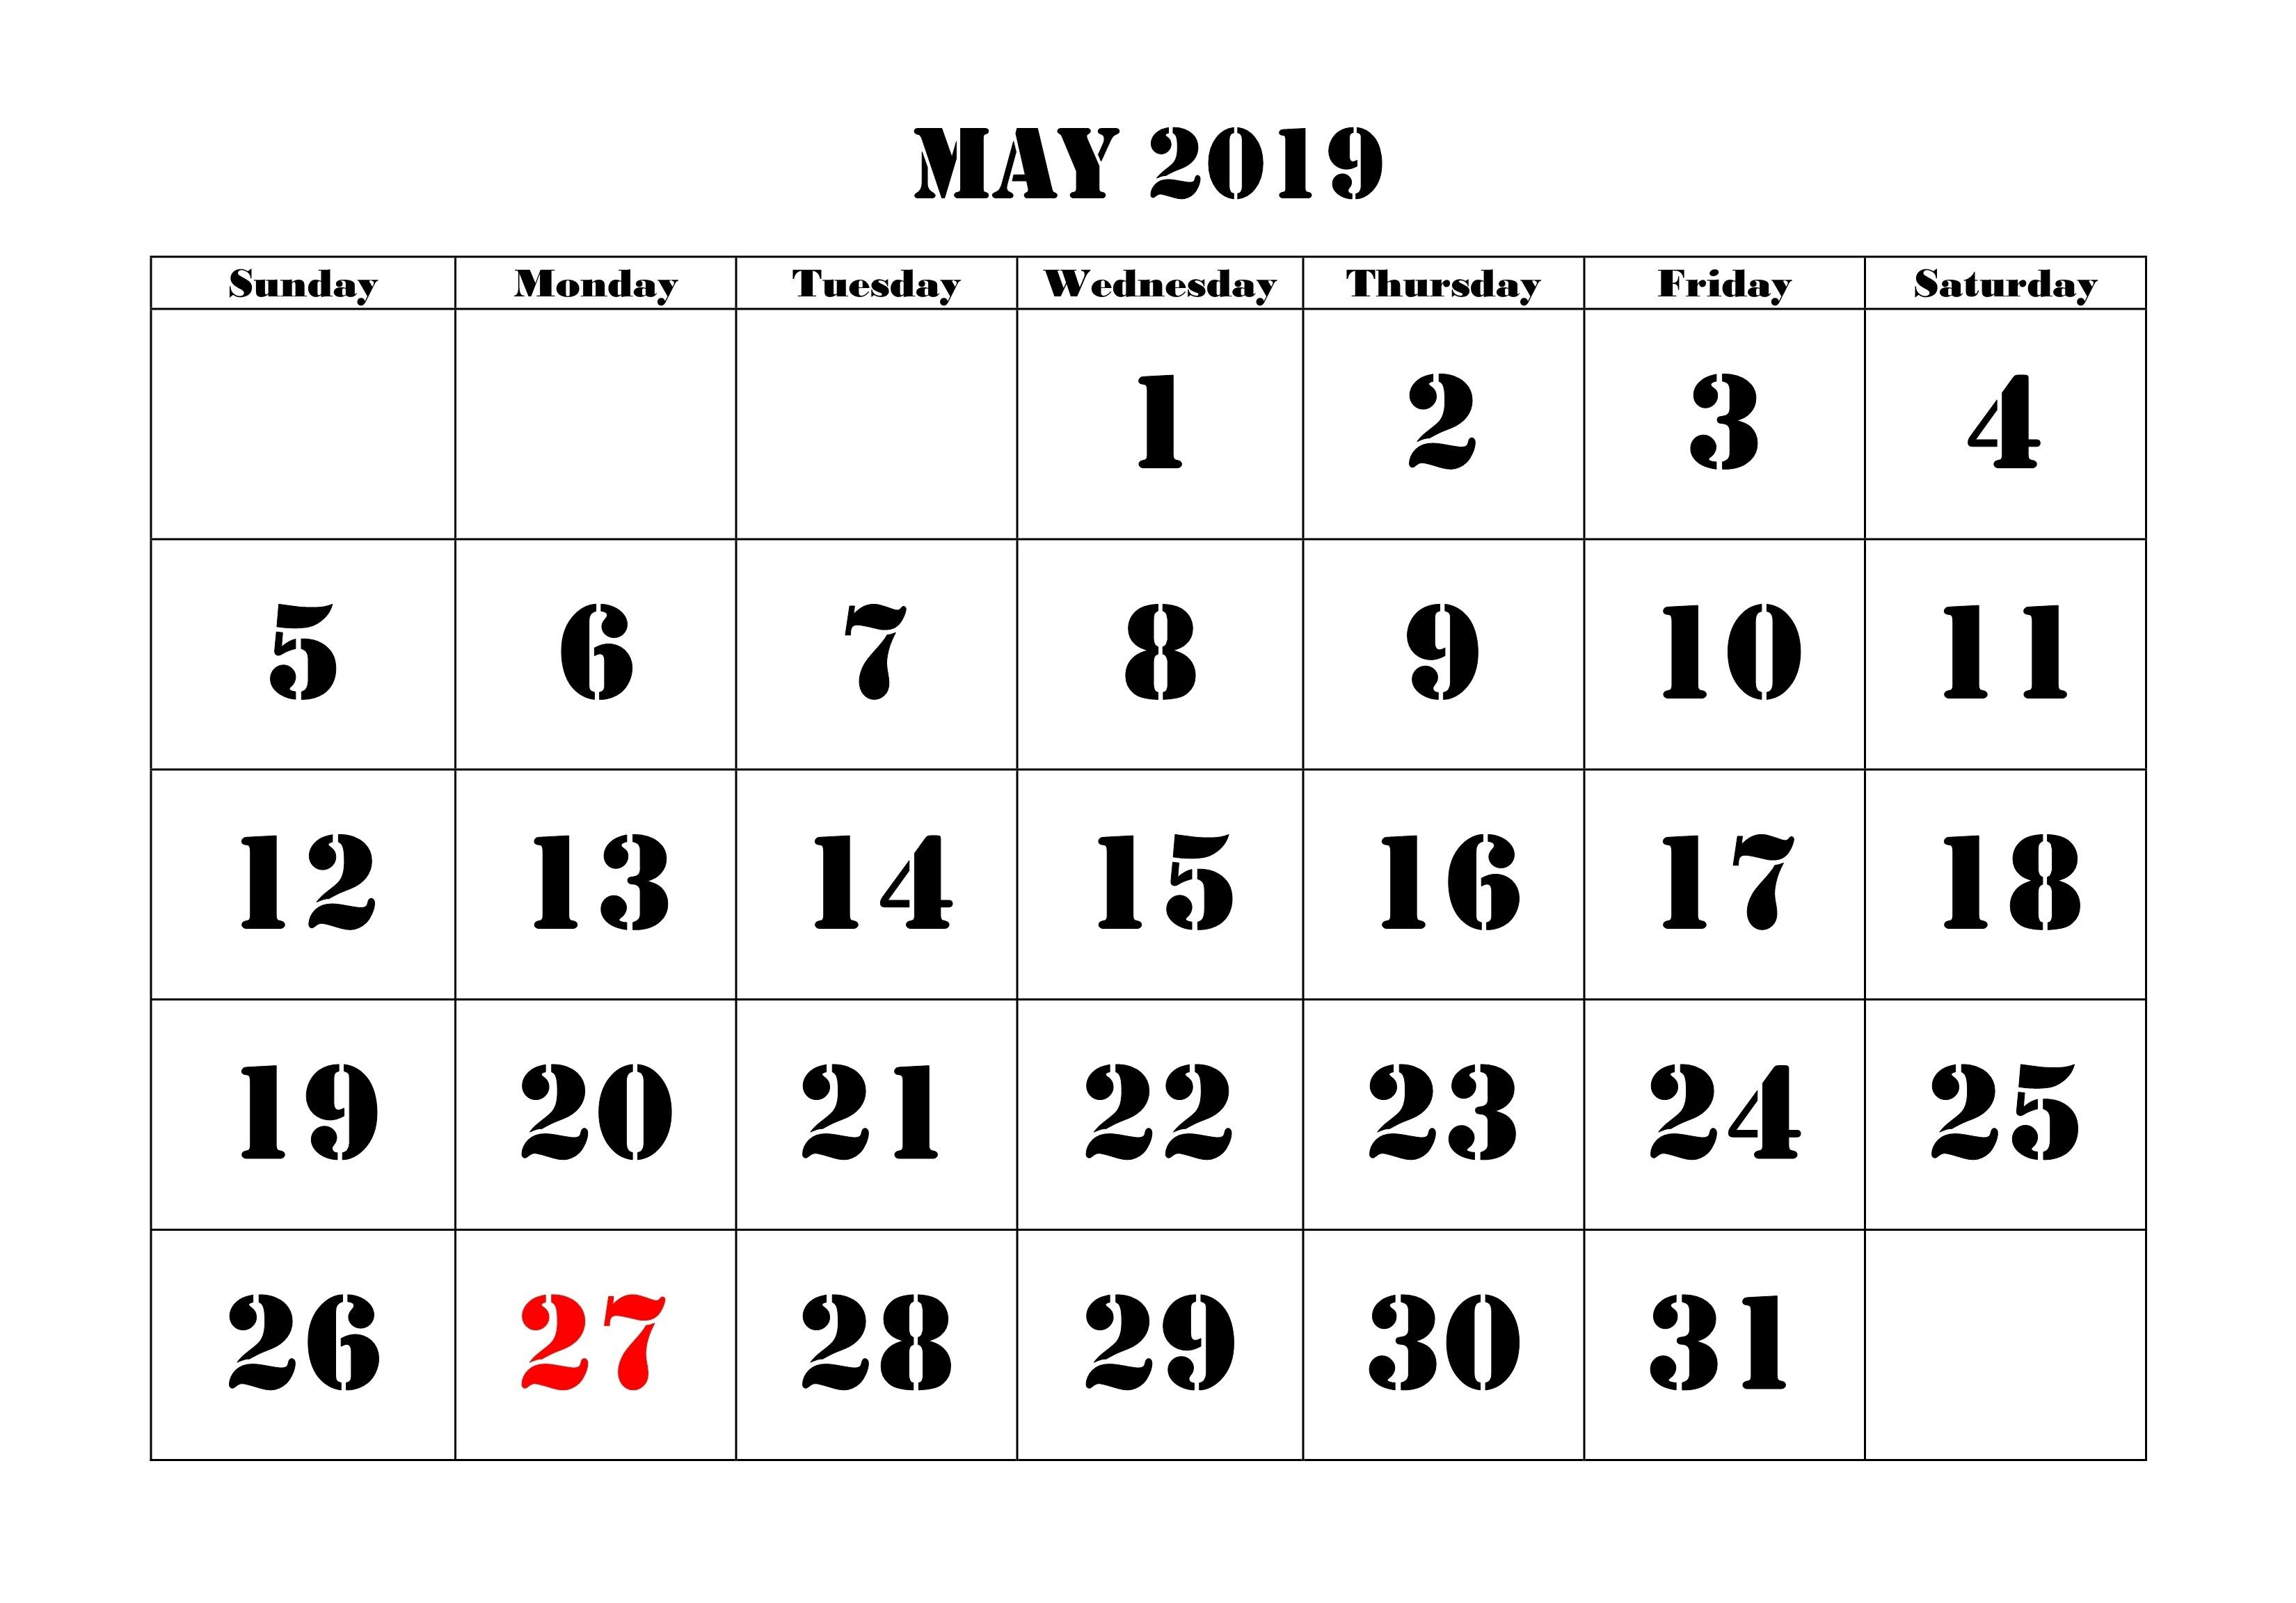 May 2019 Printable Calendar For Landscape and Vertical | May